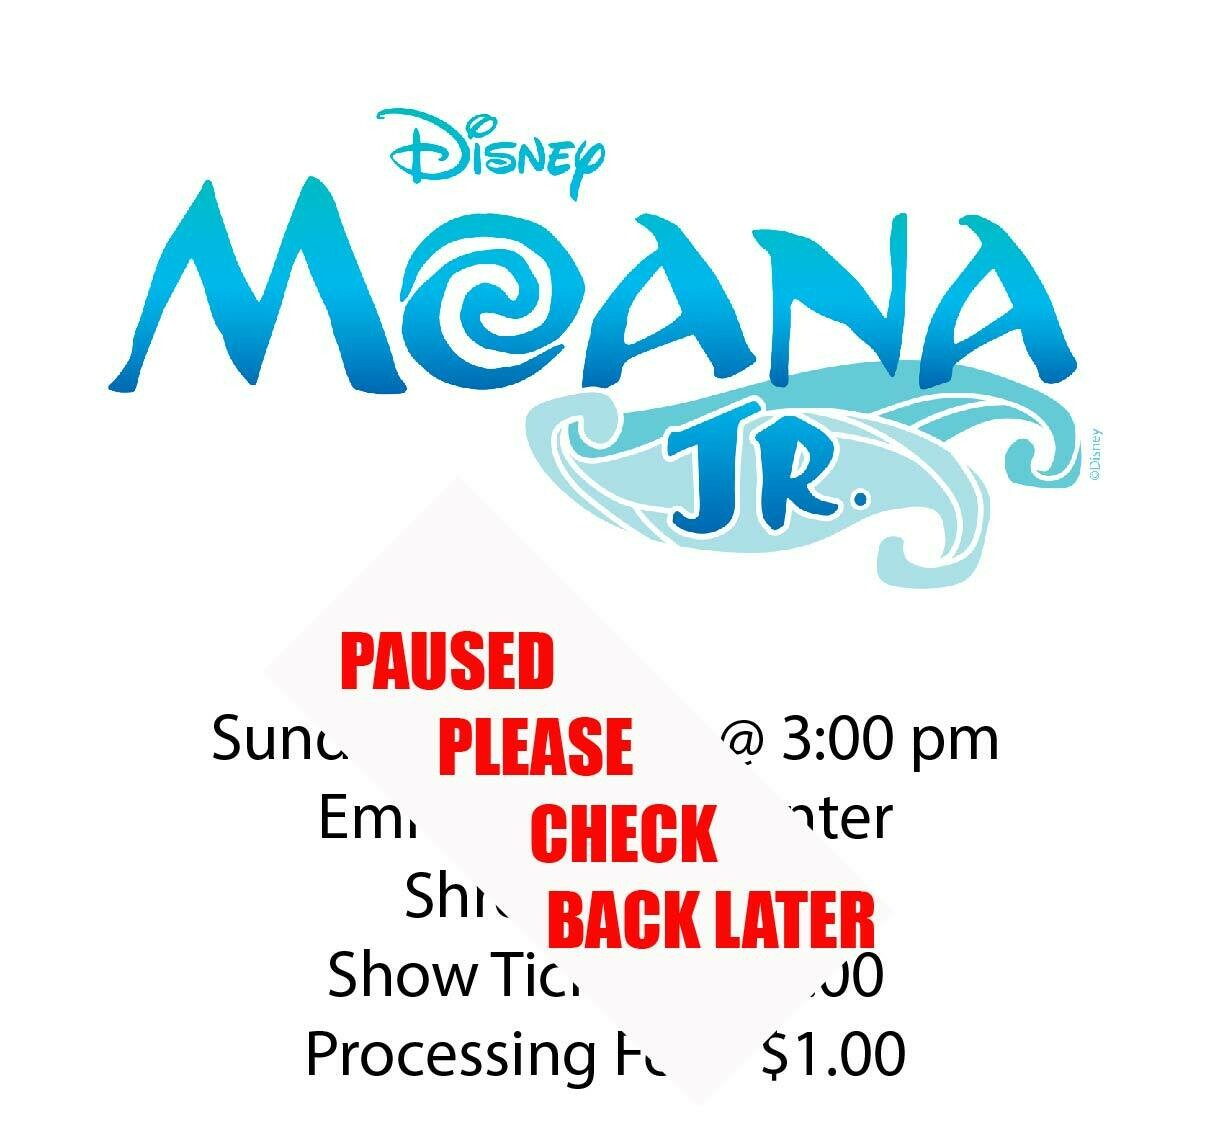 Disney's Moana JR., Sunday January 3rd @ 3:00 pm